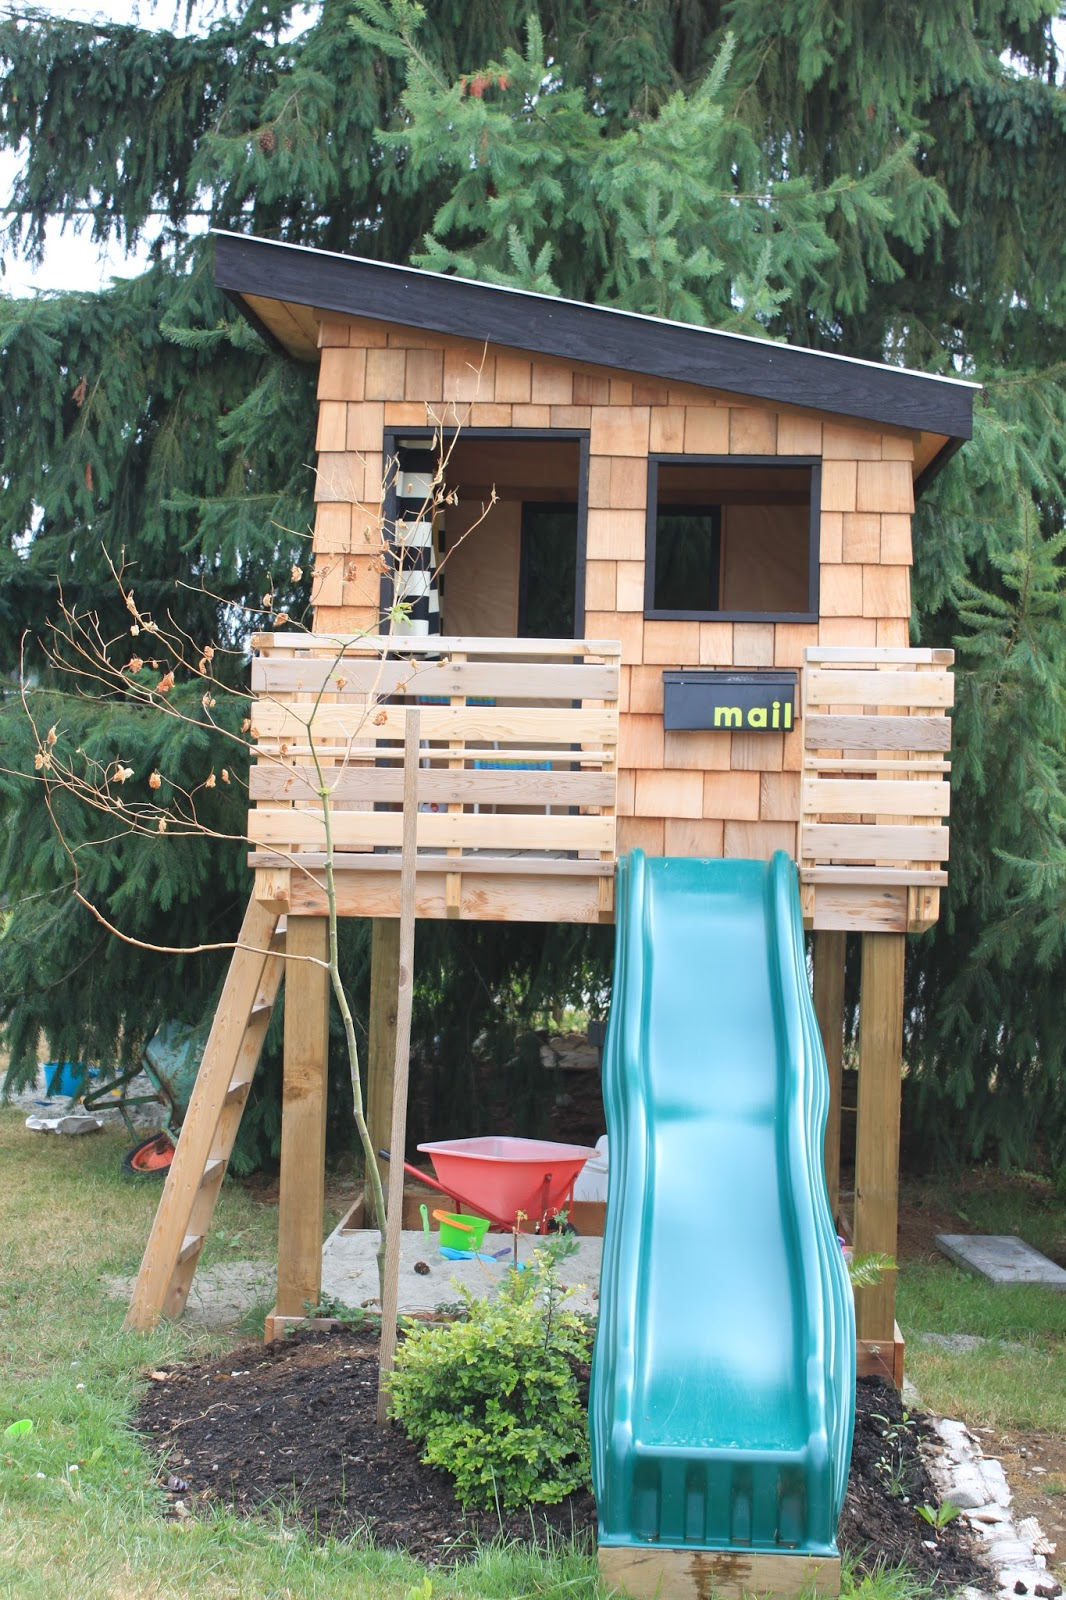 explore 15 pimped out playhouses your kids need in the backyard